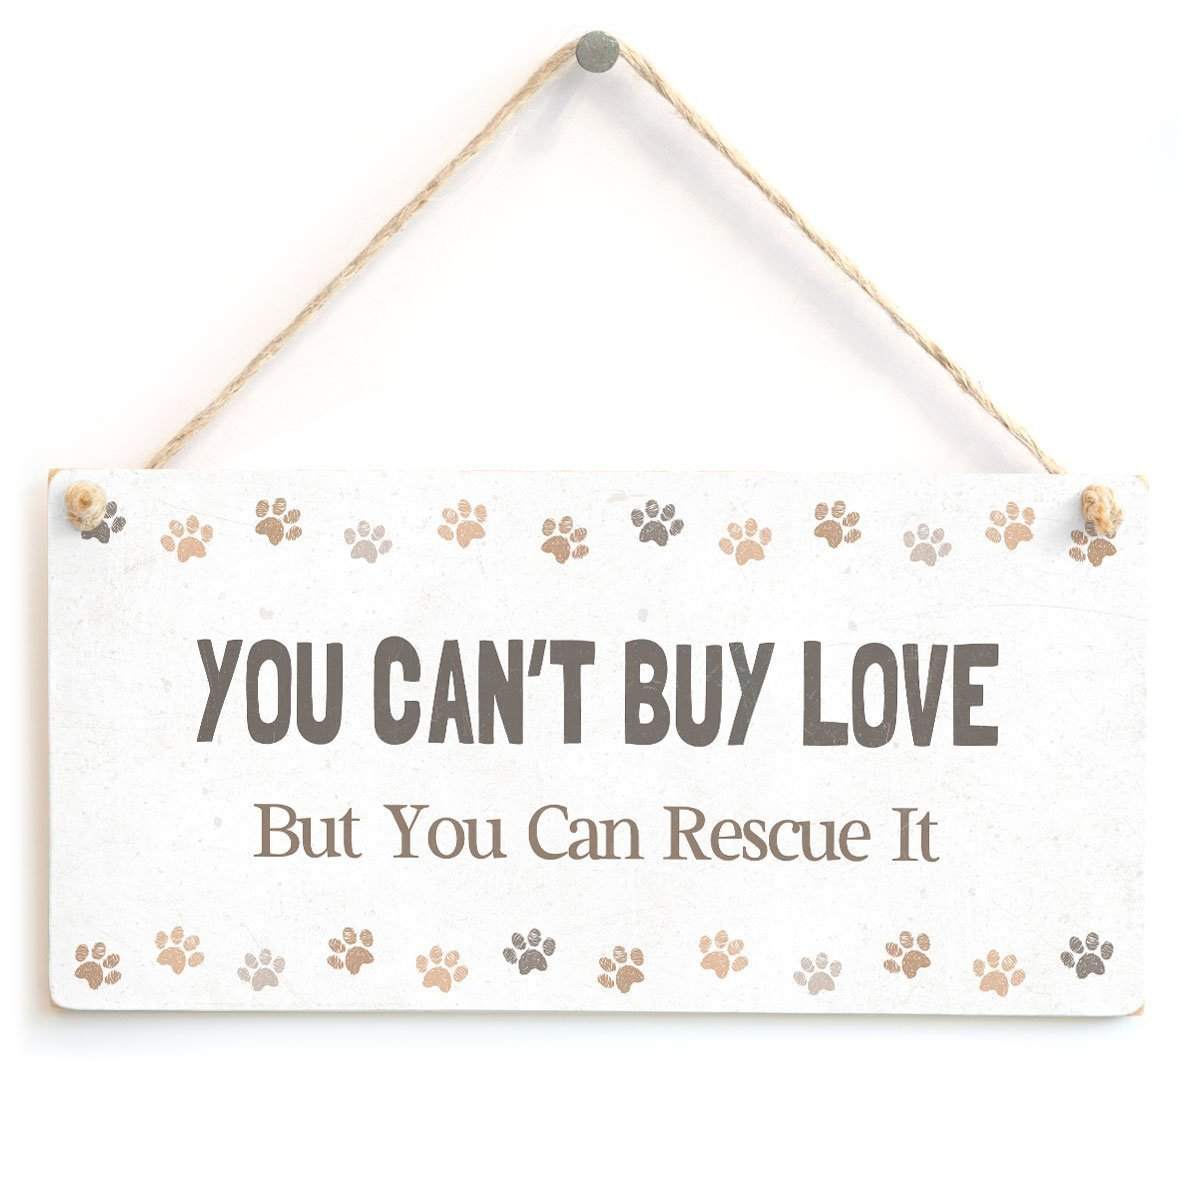 Cute Animal Rescue Sign for Rescue Cat and Rescue Dog Owners 10x5 Meijiafei You CAN/'T Buy Love But You Can Rescue It